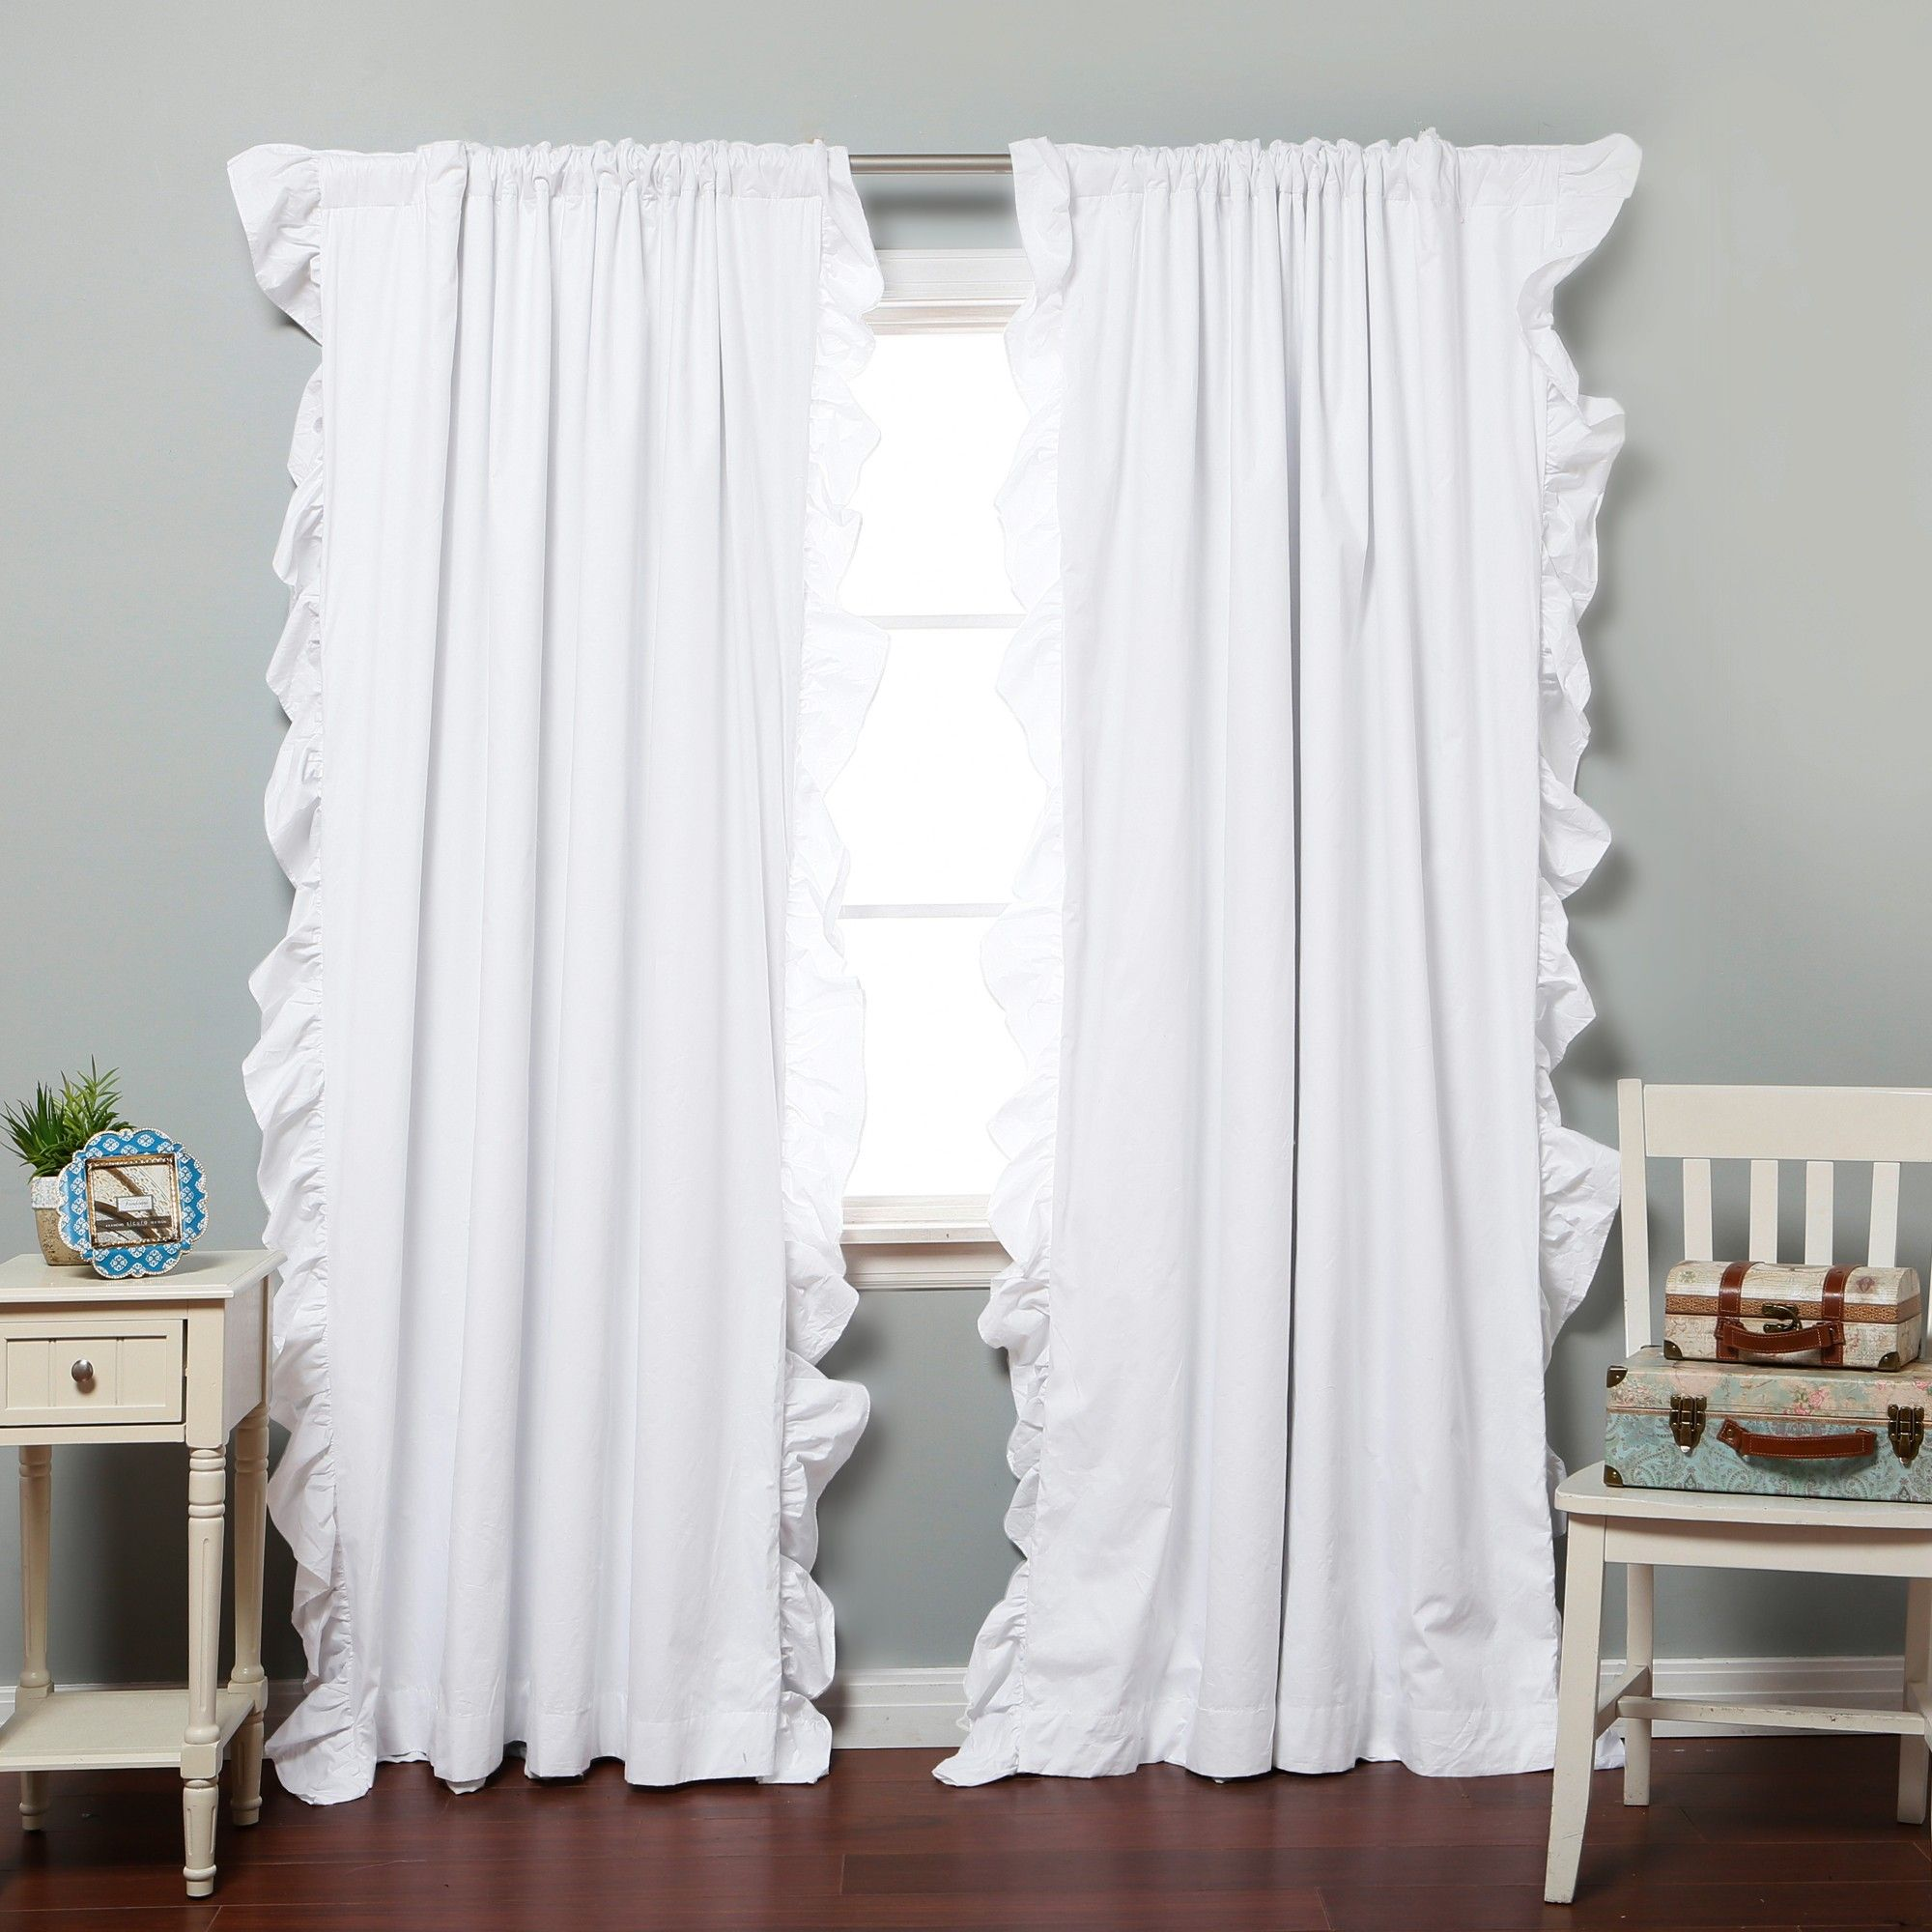 White Blackout Curtains Target Http Www Grandprixafterparty